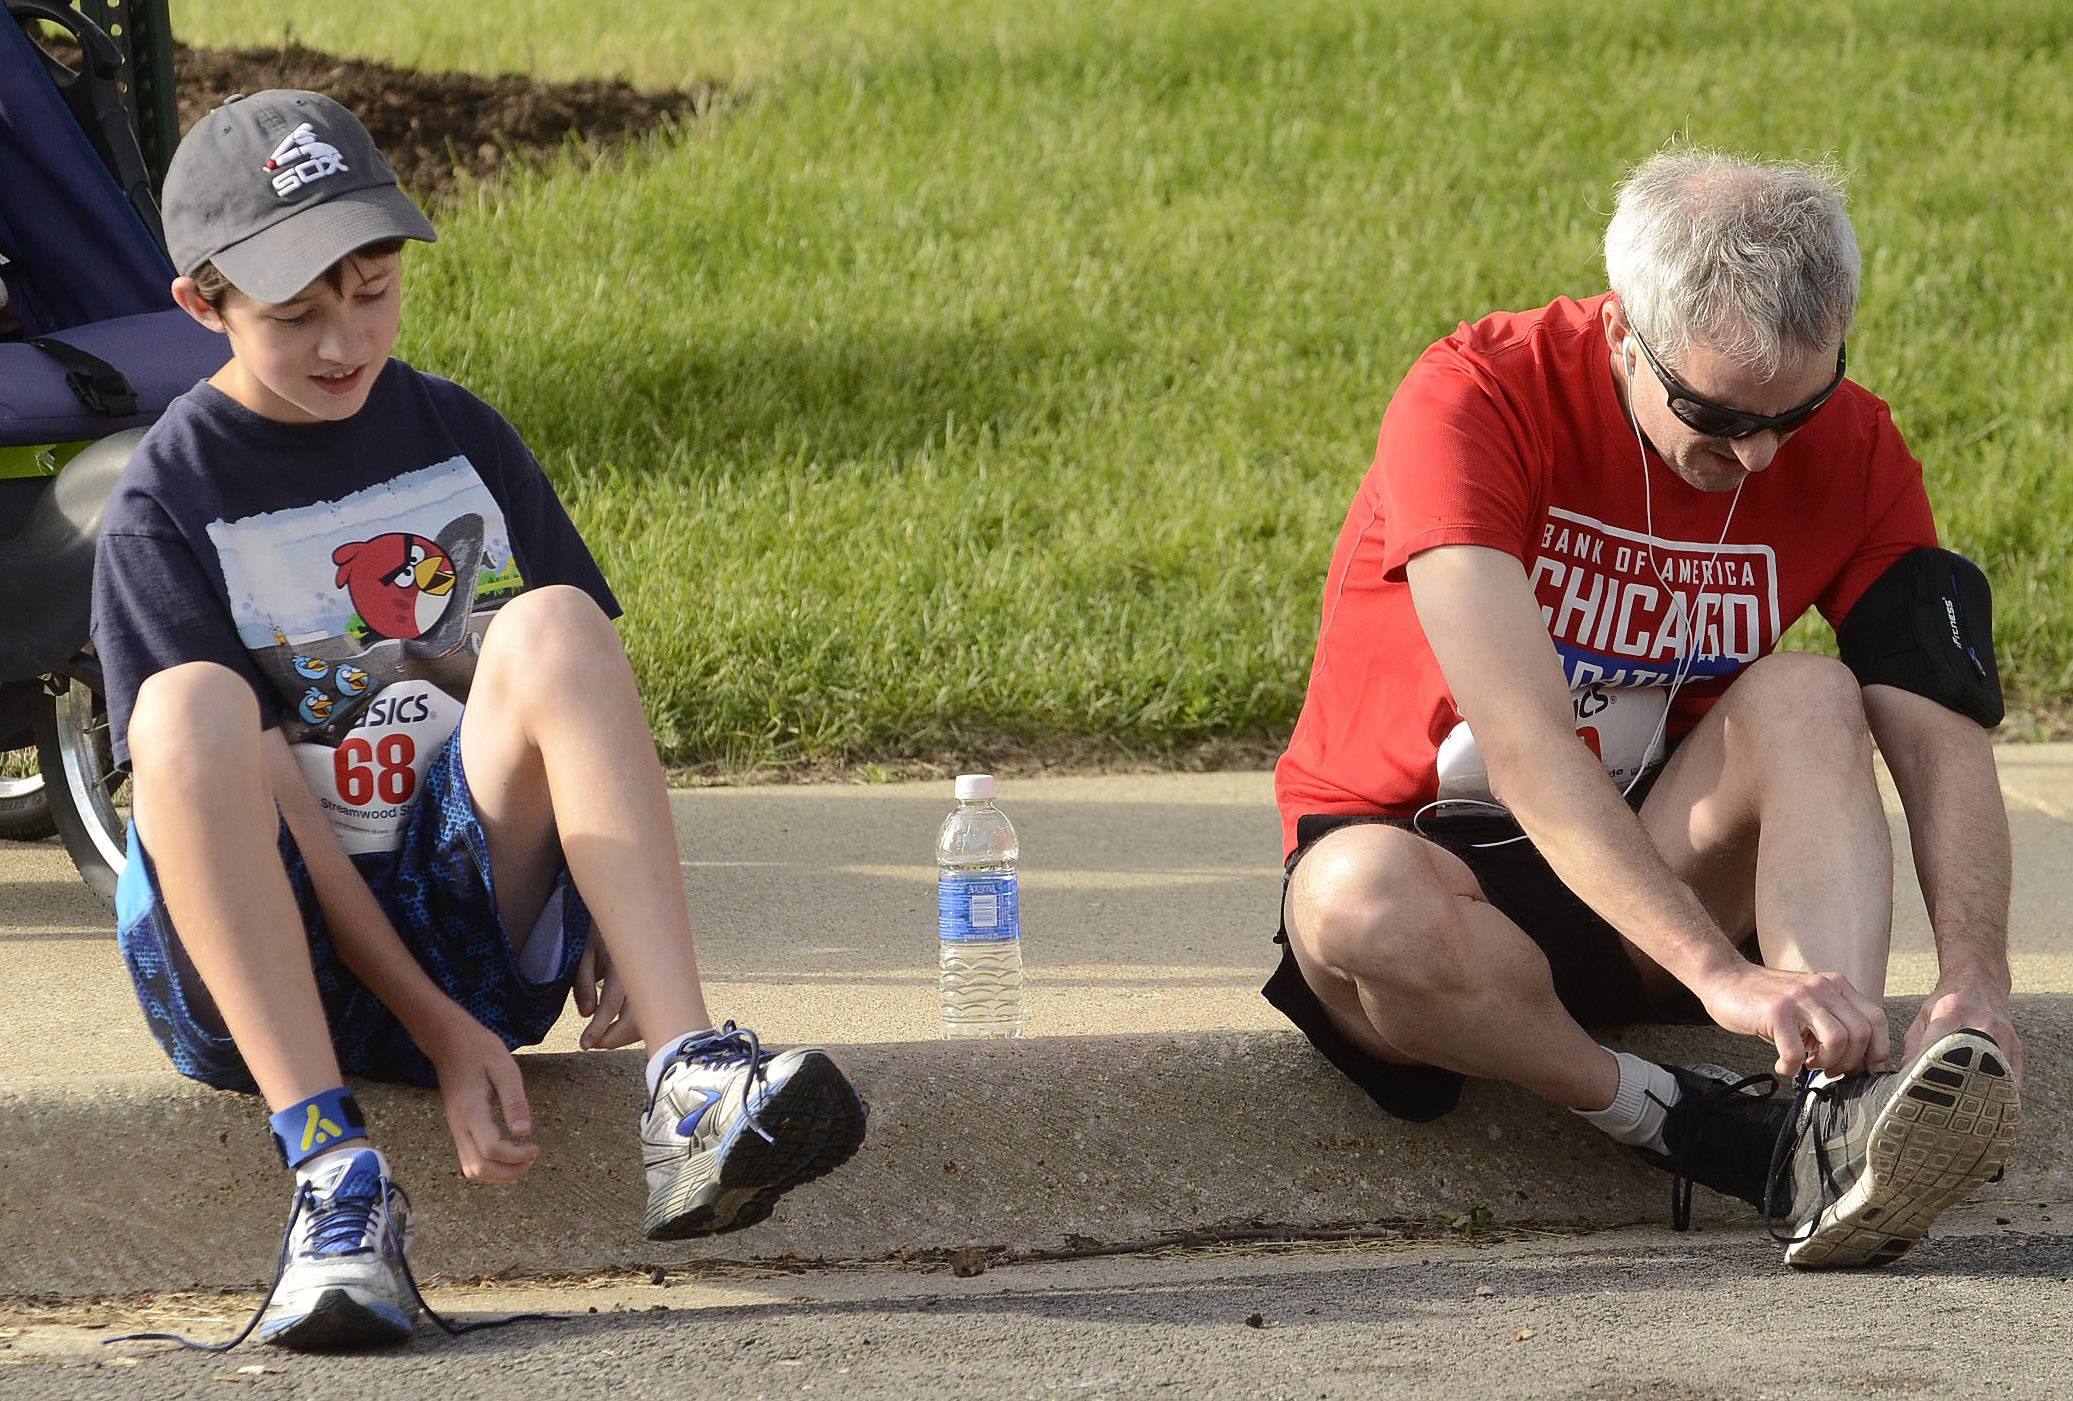 John Gulliford, 48, of Schaumburg, and his son Paul, 11, lace-up their shoes before the start of the Streamwood Stride 5K/10K/Fun Run Saturday morning at the Park Place Family Recreation Center. Gulliford has been running since the 1970s, and has run in eight marathons including Boston.